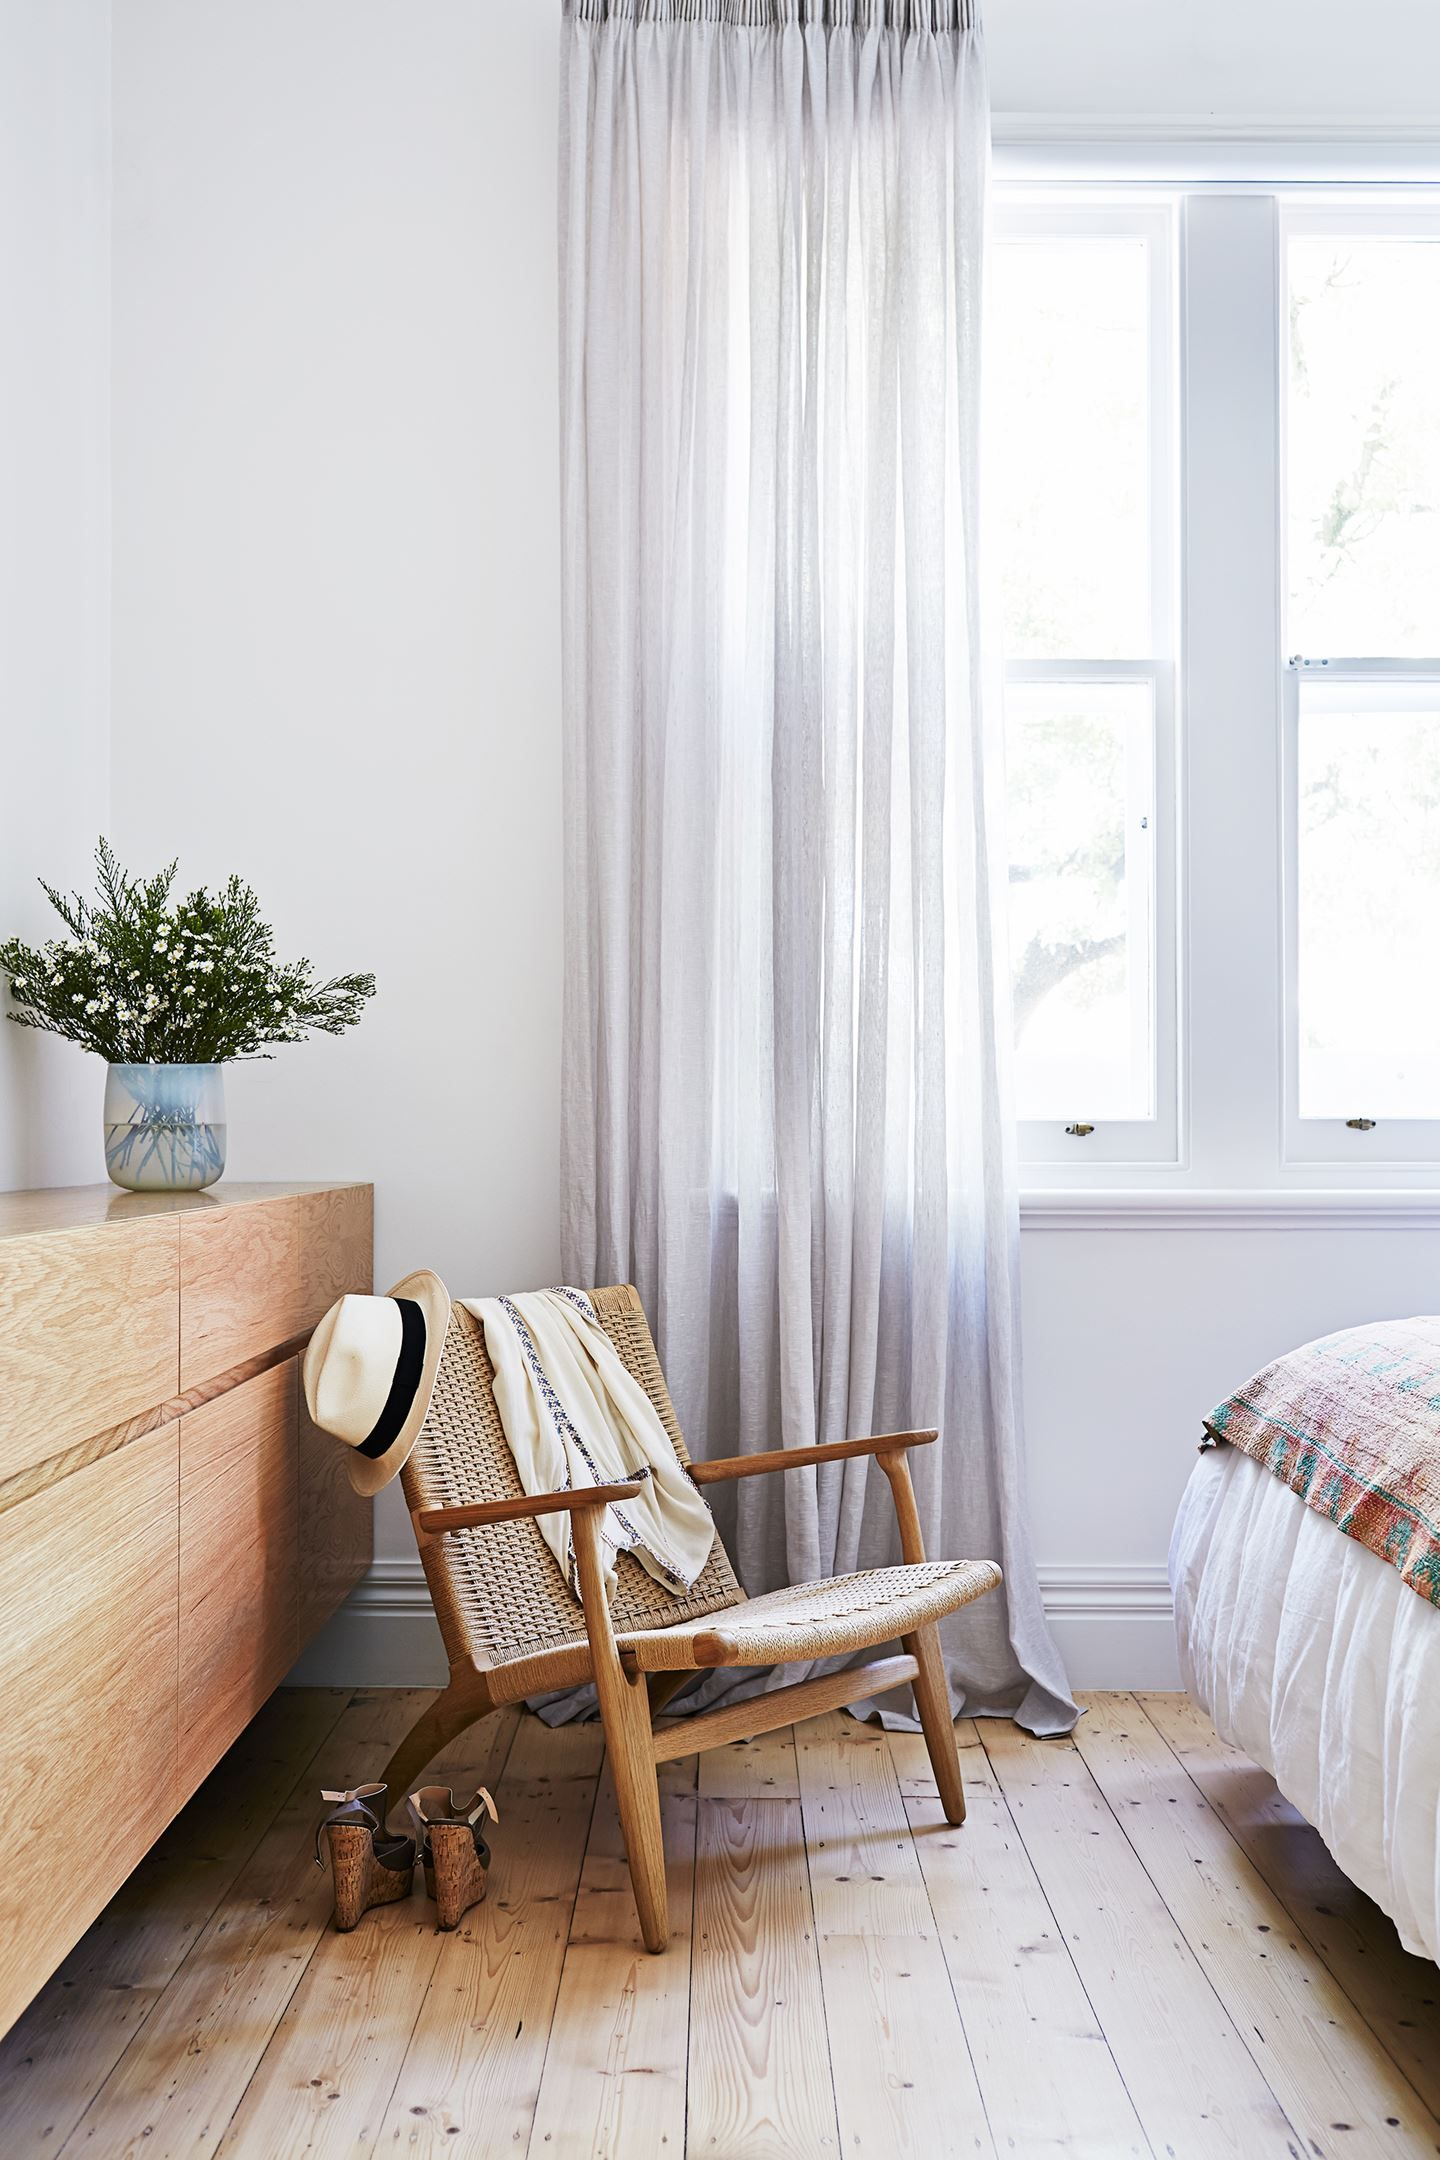 Allowing the sheer linen curtains from [Unique Fabrics]